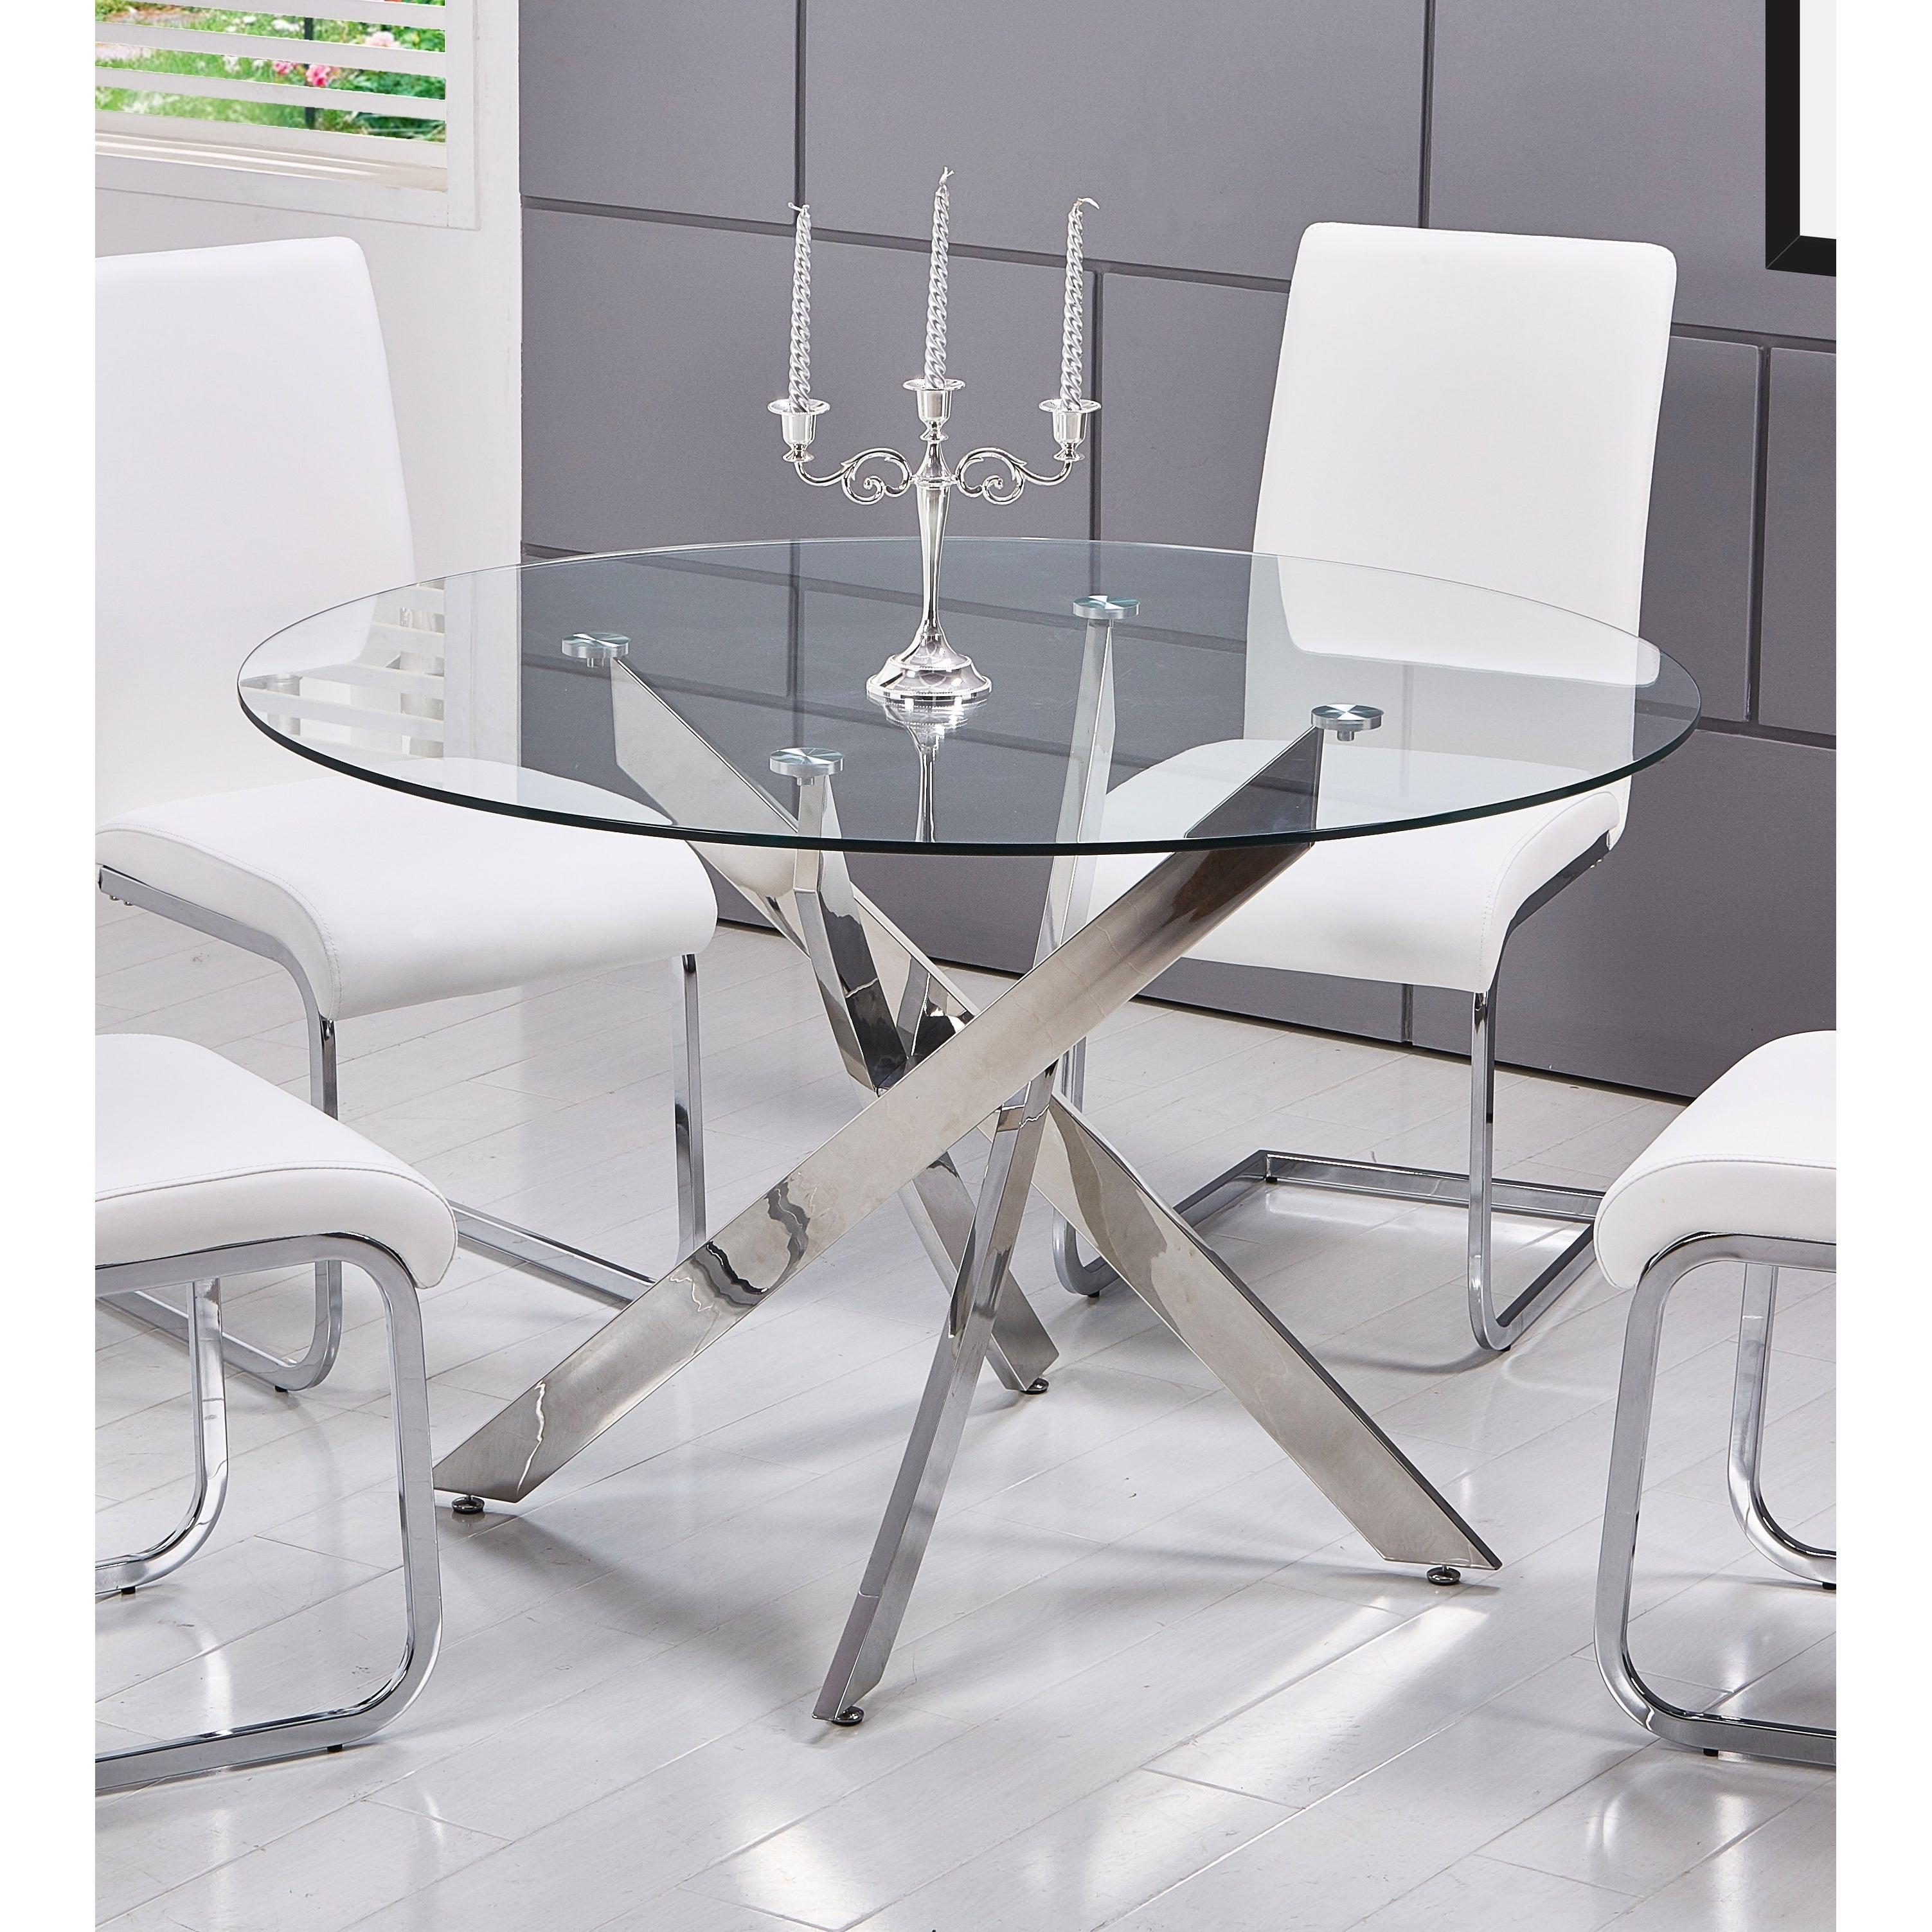 Best Master Furniture T01 Round Glass Dining Table Silver Overstock 19674774